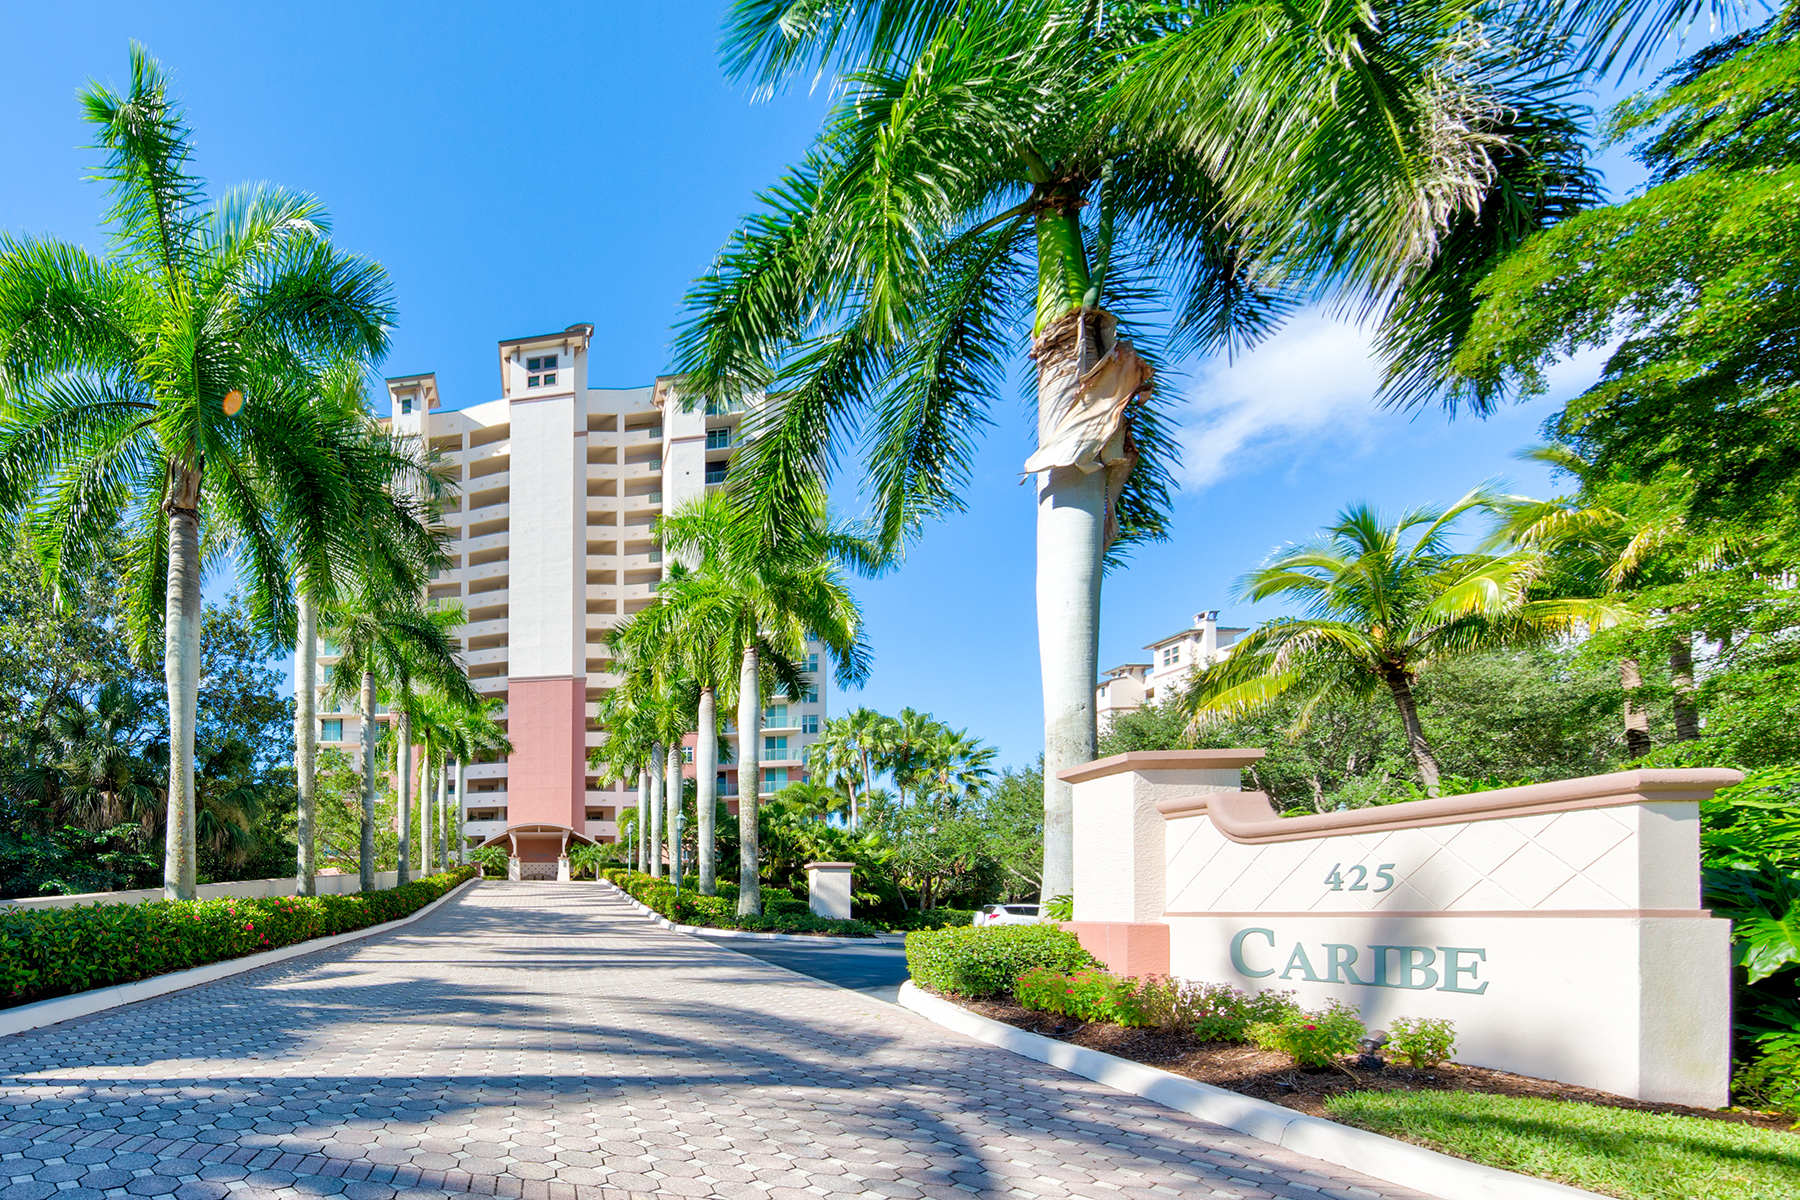 Additional photo for property listing at CARIBE AT COVE TOWERS 425  Cove Tower Dr 1002,  Naples, Florida 34110 United States